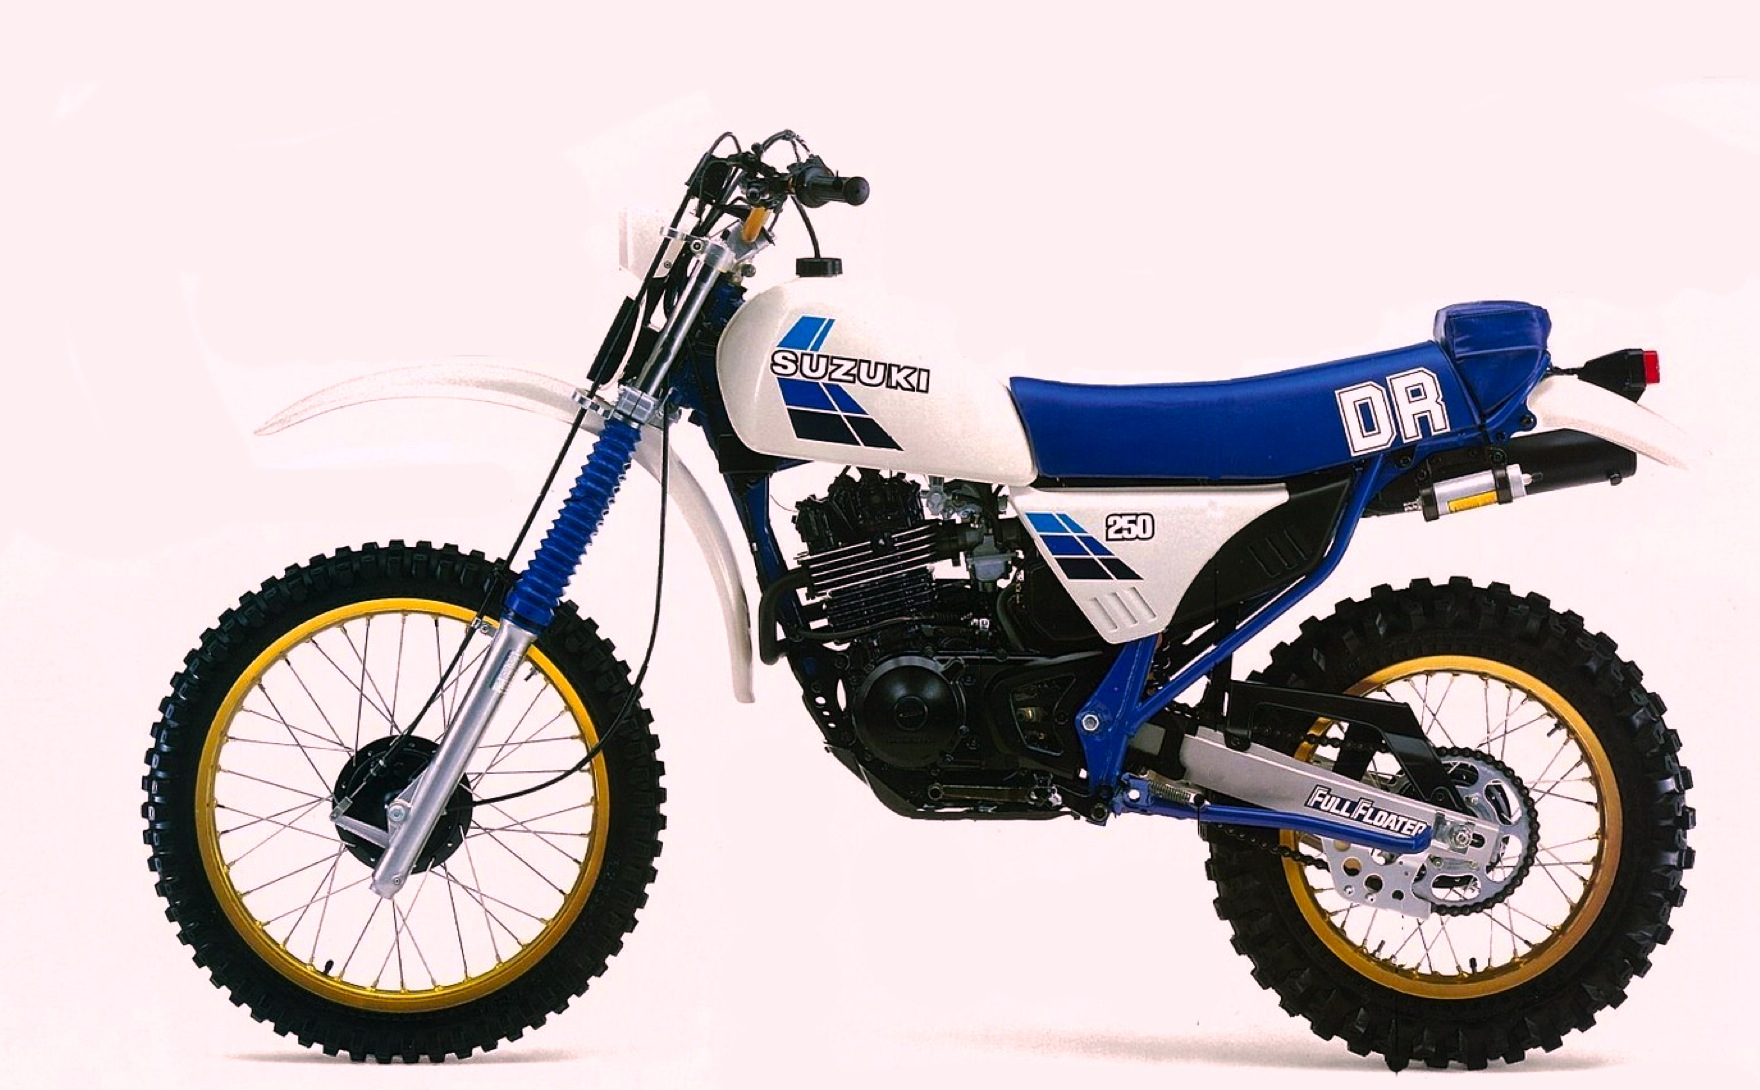 Suzuki Dr250 Motor Diagram Reinvent Your Wiring Dr250s 1983 Any Good Or Not Rh Forum Ozvmx Com Dr 250 1995